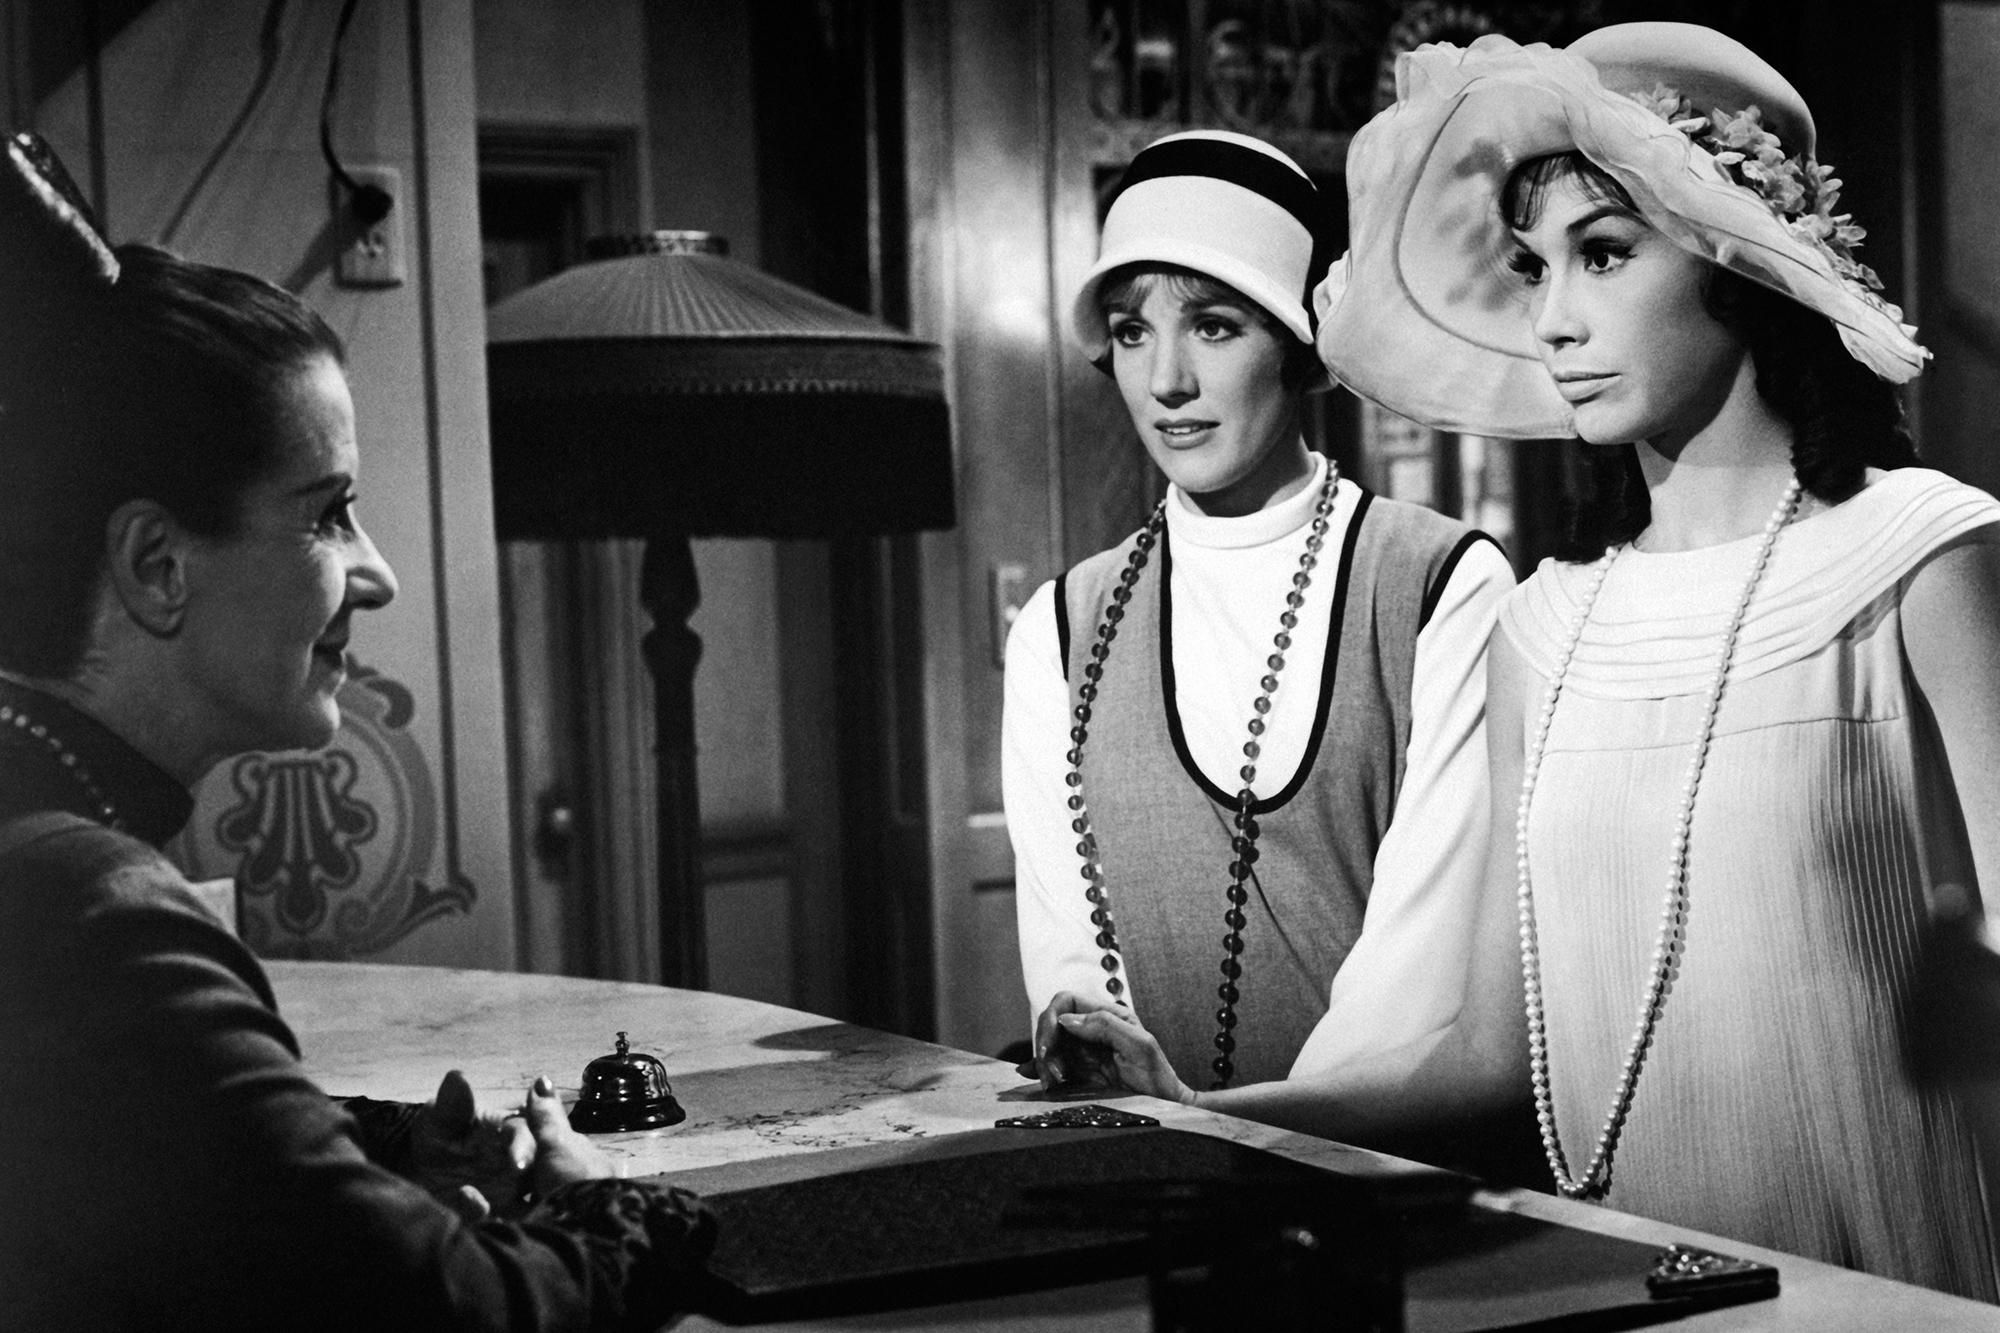 Julie Andrews and Mary Tyler Moore in Thoroughly Modern Millie, 1967.